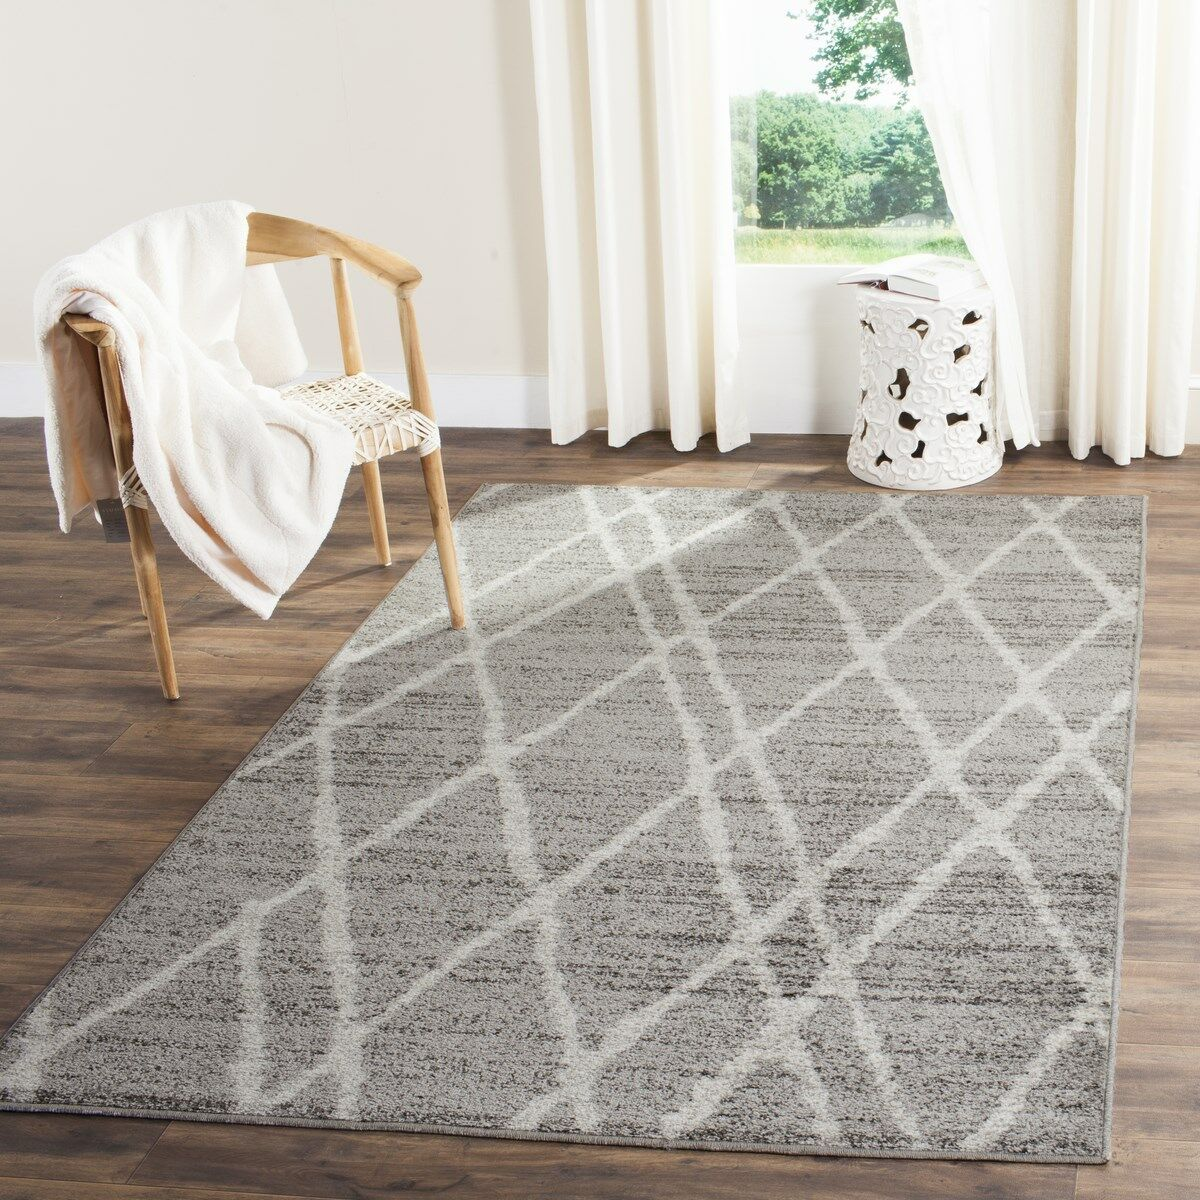 Seaport Gray/Ivory Area Rug Rug Size: Rectangle 9' x 12'